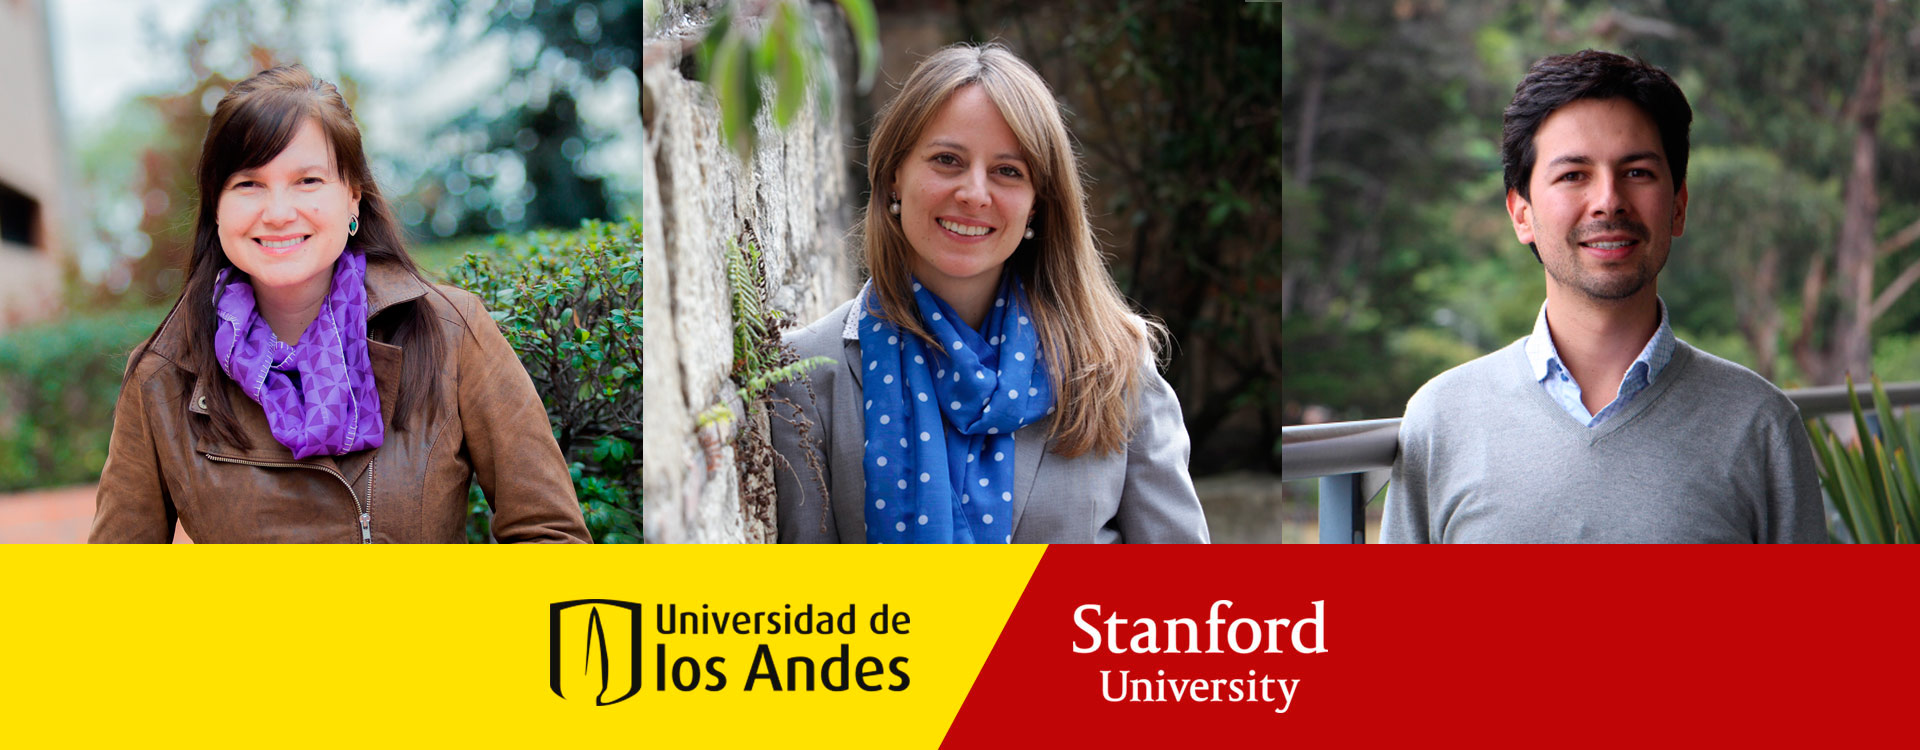 Two women and a man with emblems of Universidad de los Andes and Stanford University.